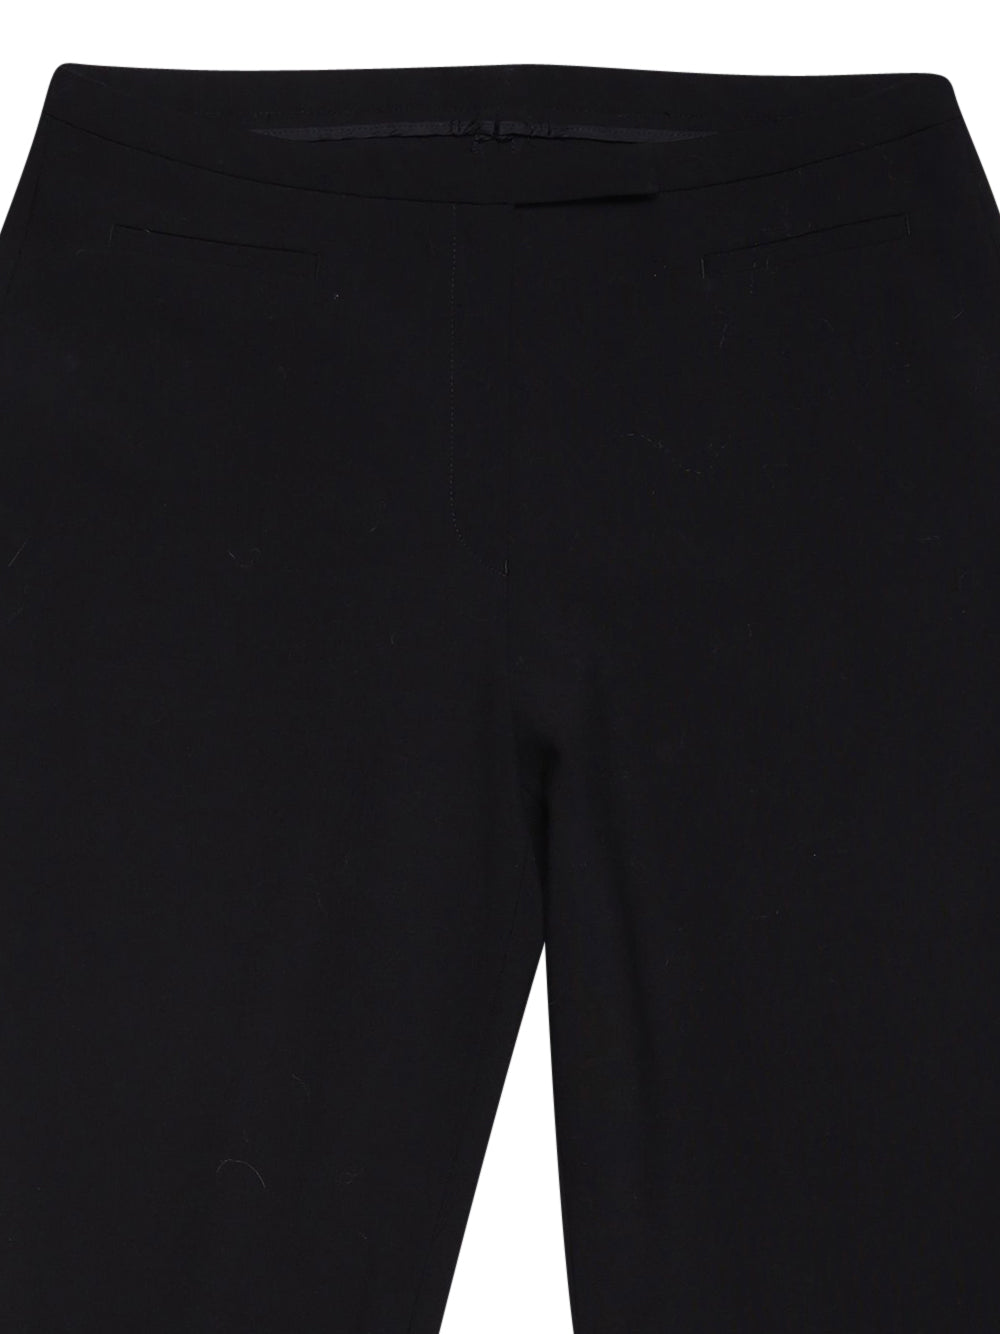 Detail photo of Preloved St.Emile Black Woman's trousers - size 12/L